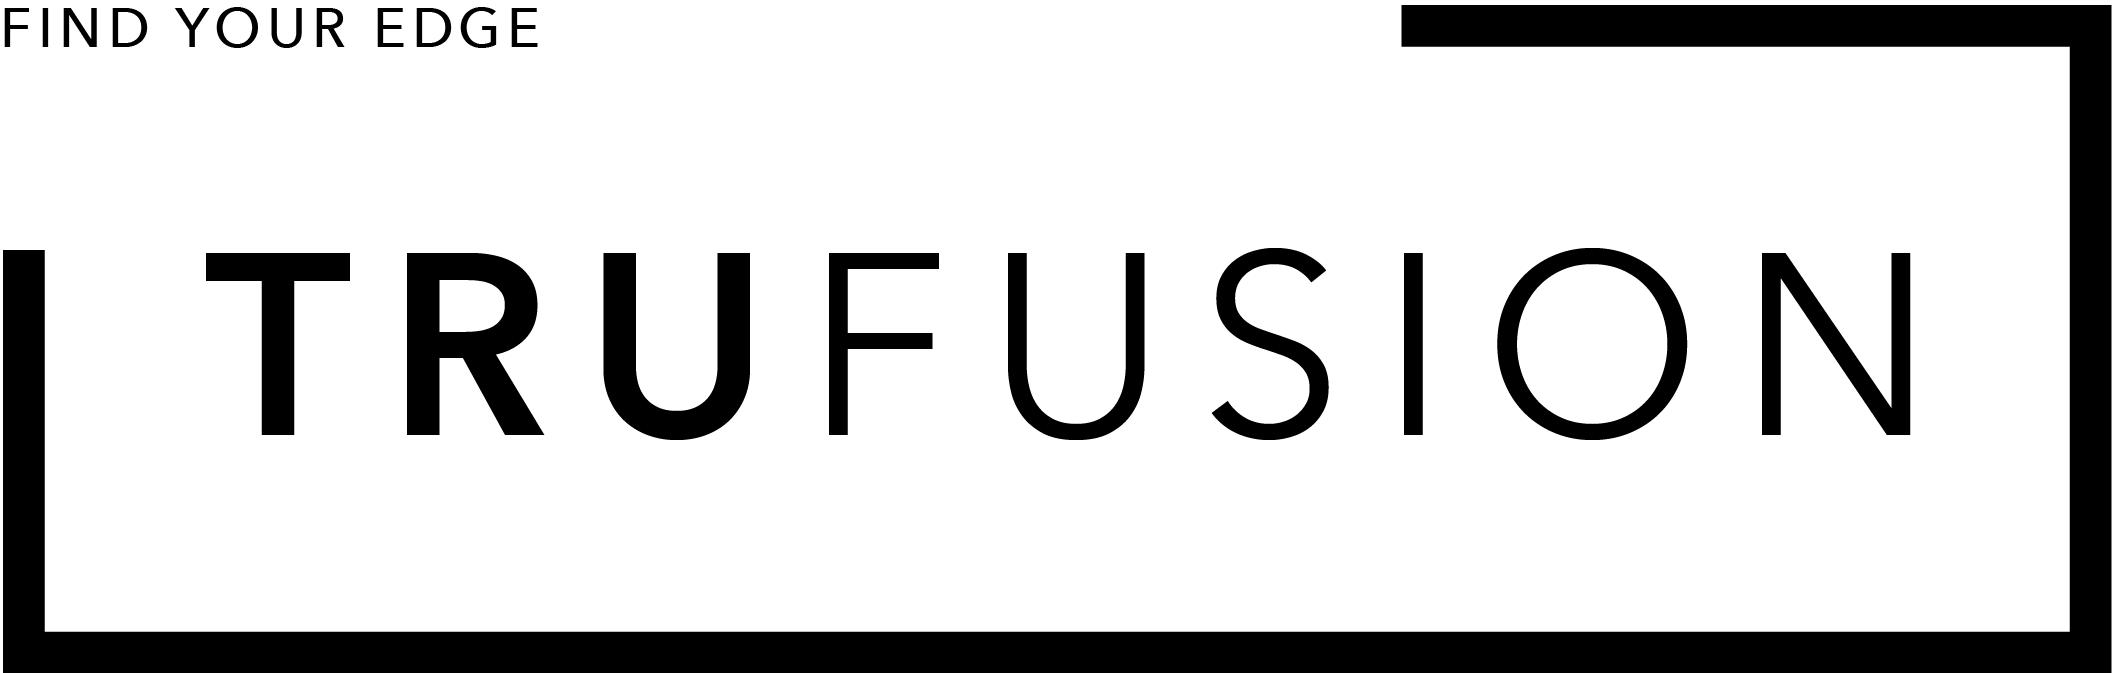 trufusion-Black-logo-without-classes (7).png